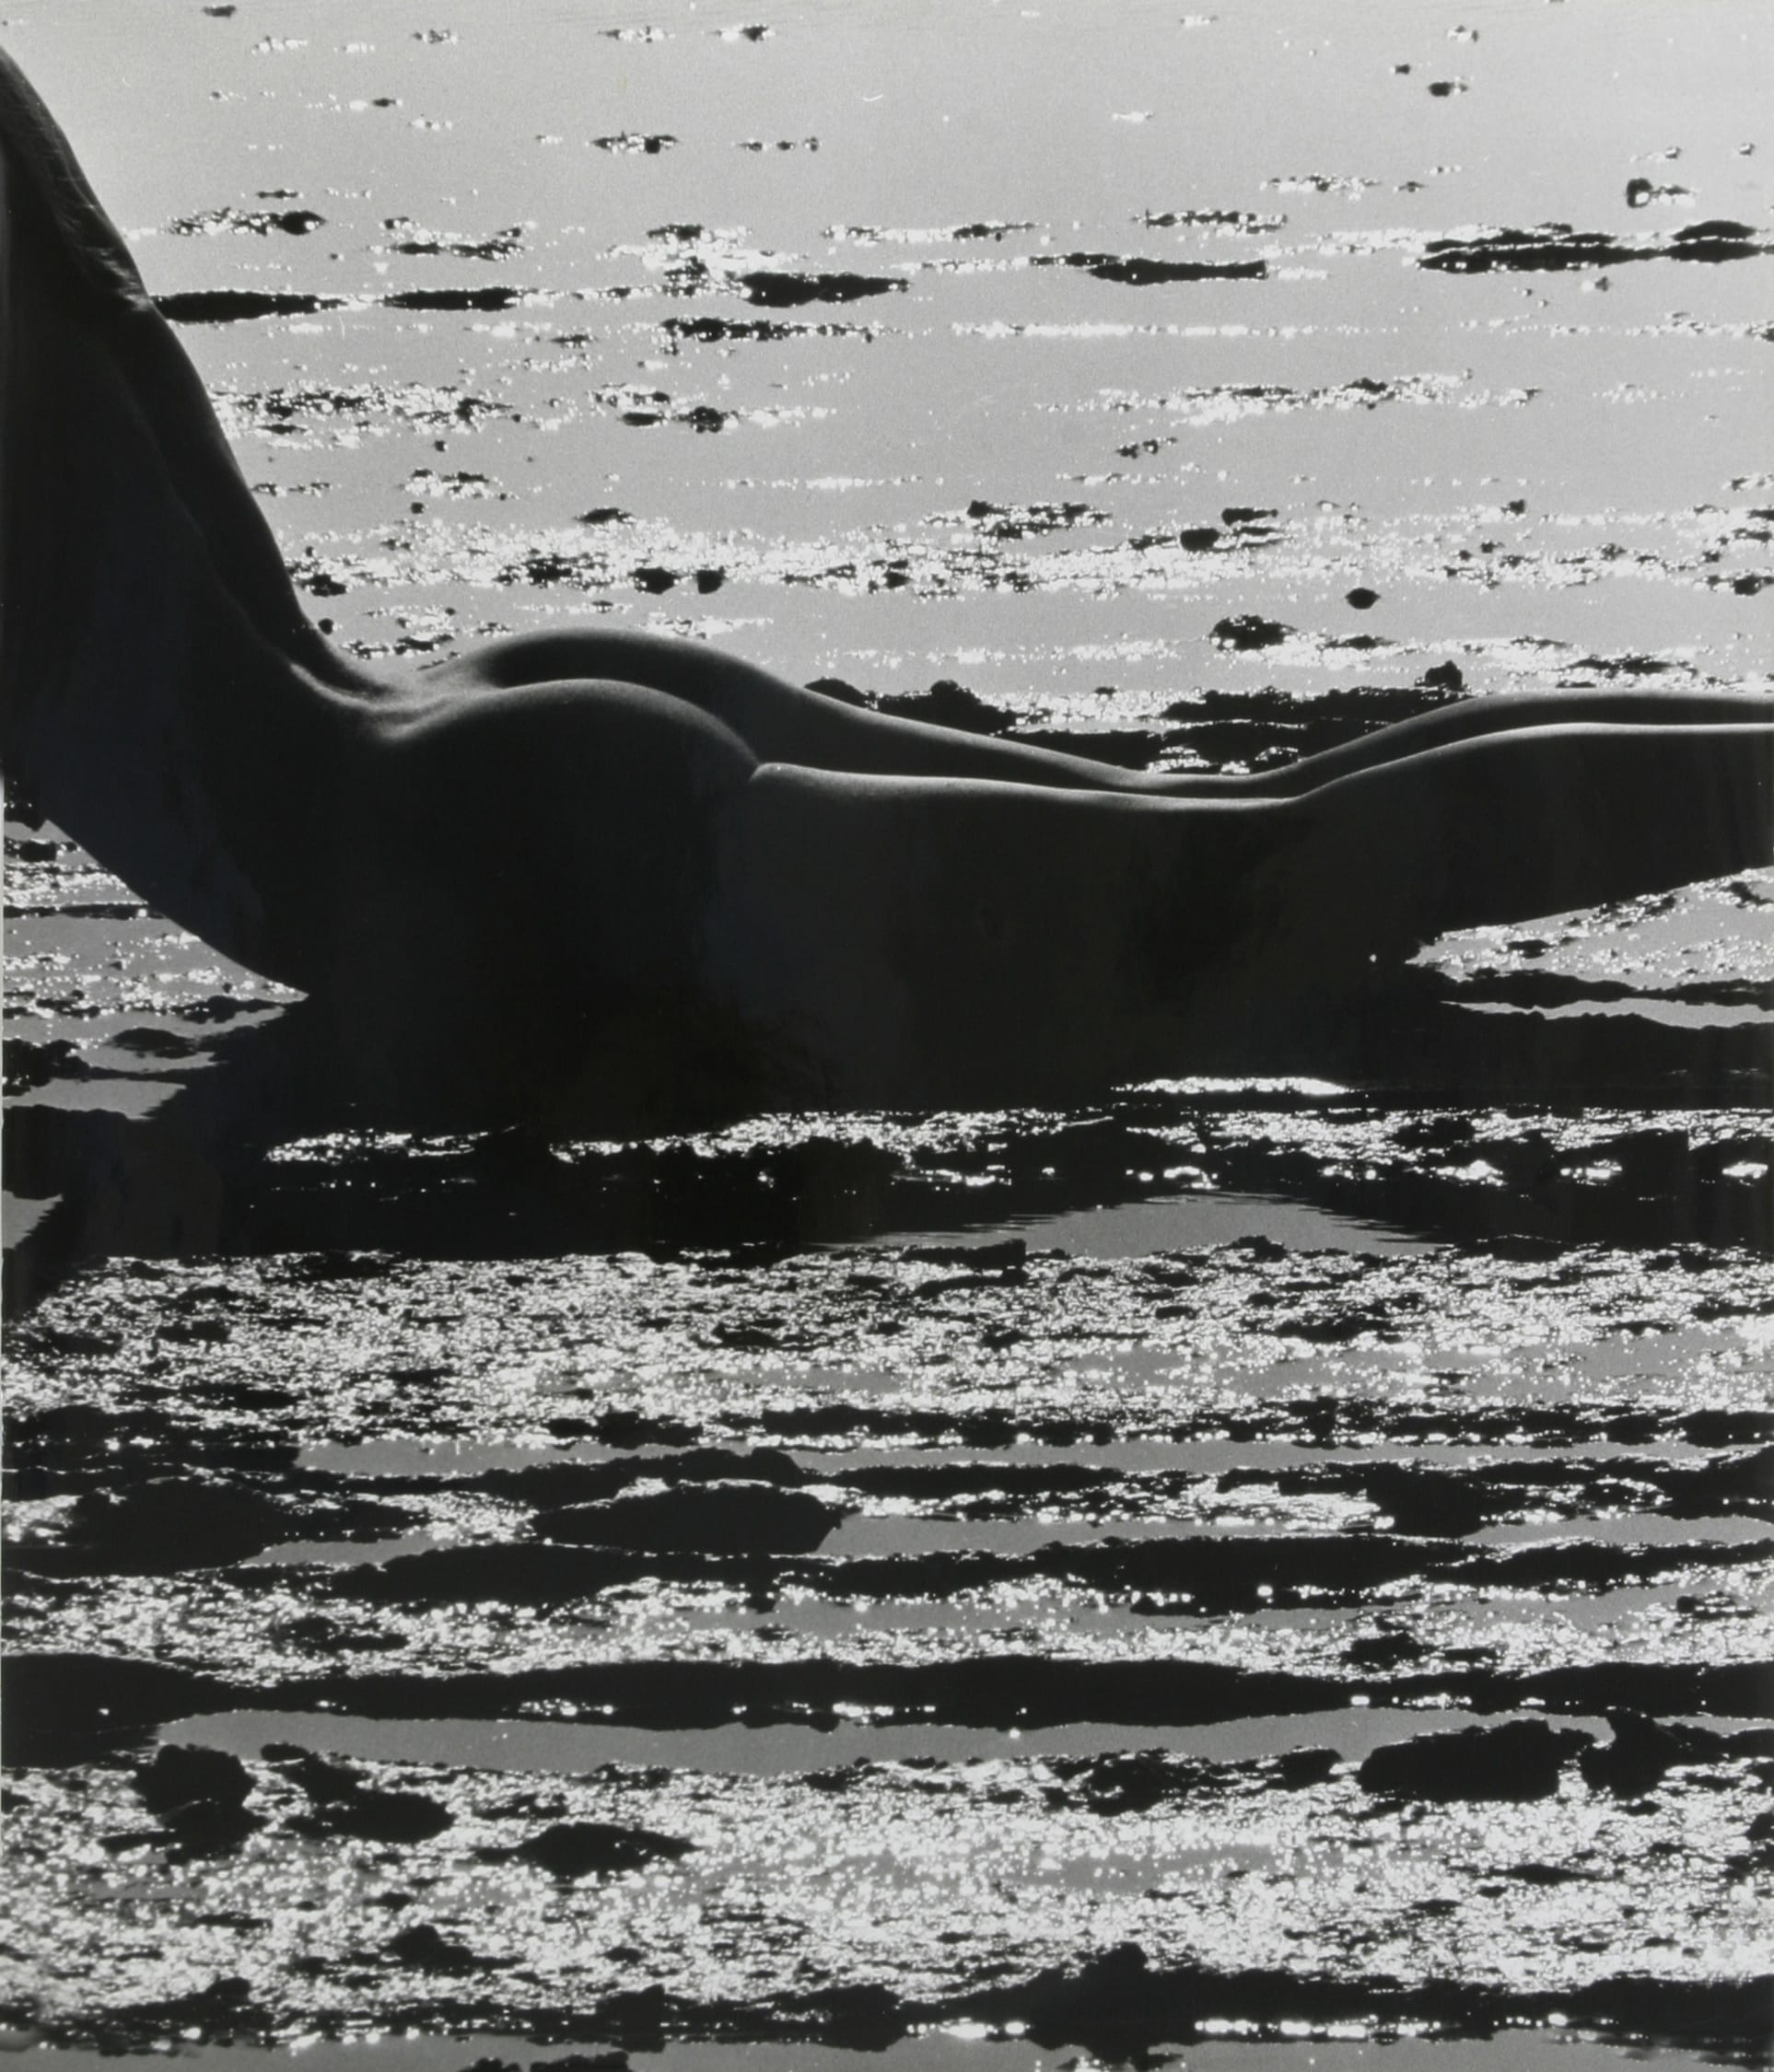 0305-Clergue-nudo-in-mare.jpg